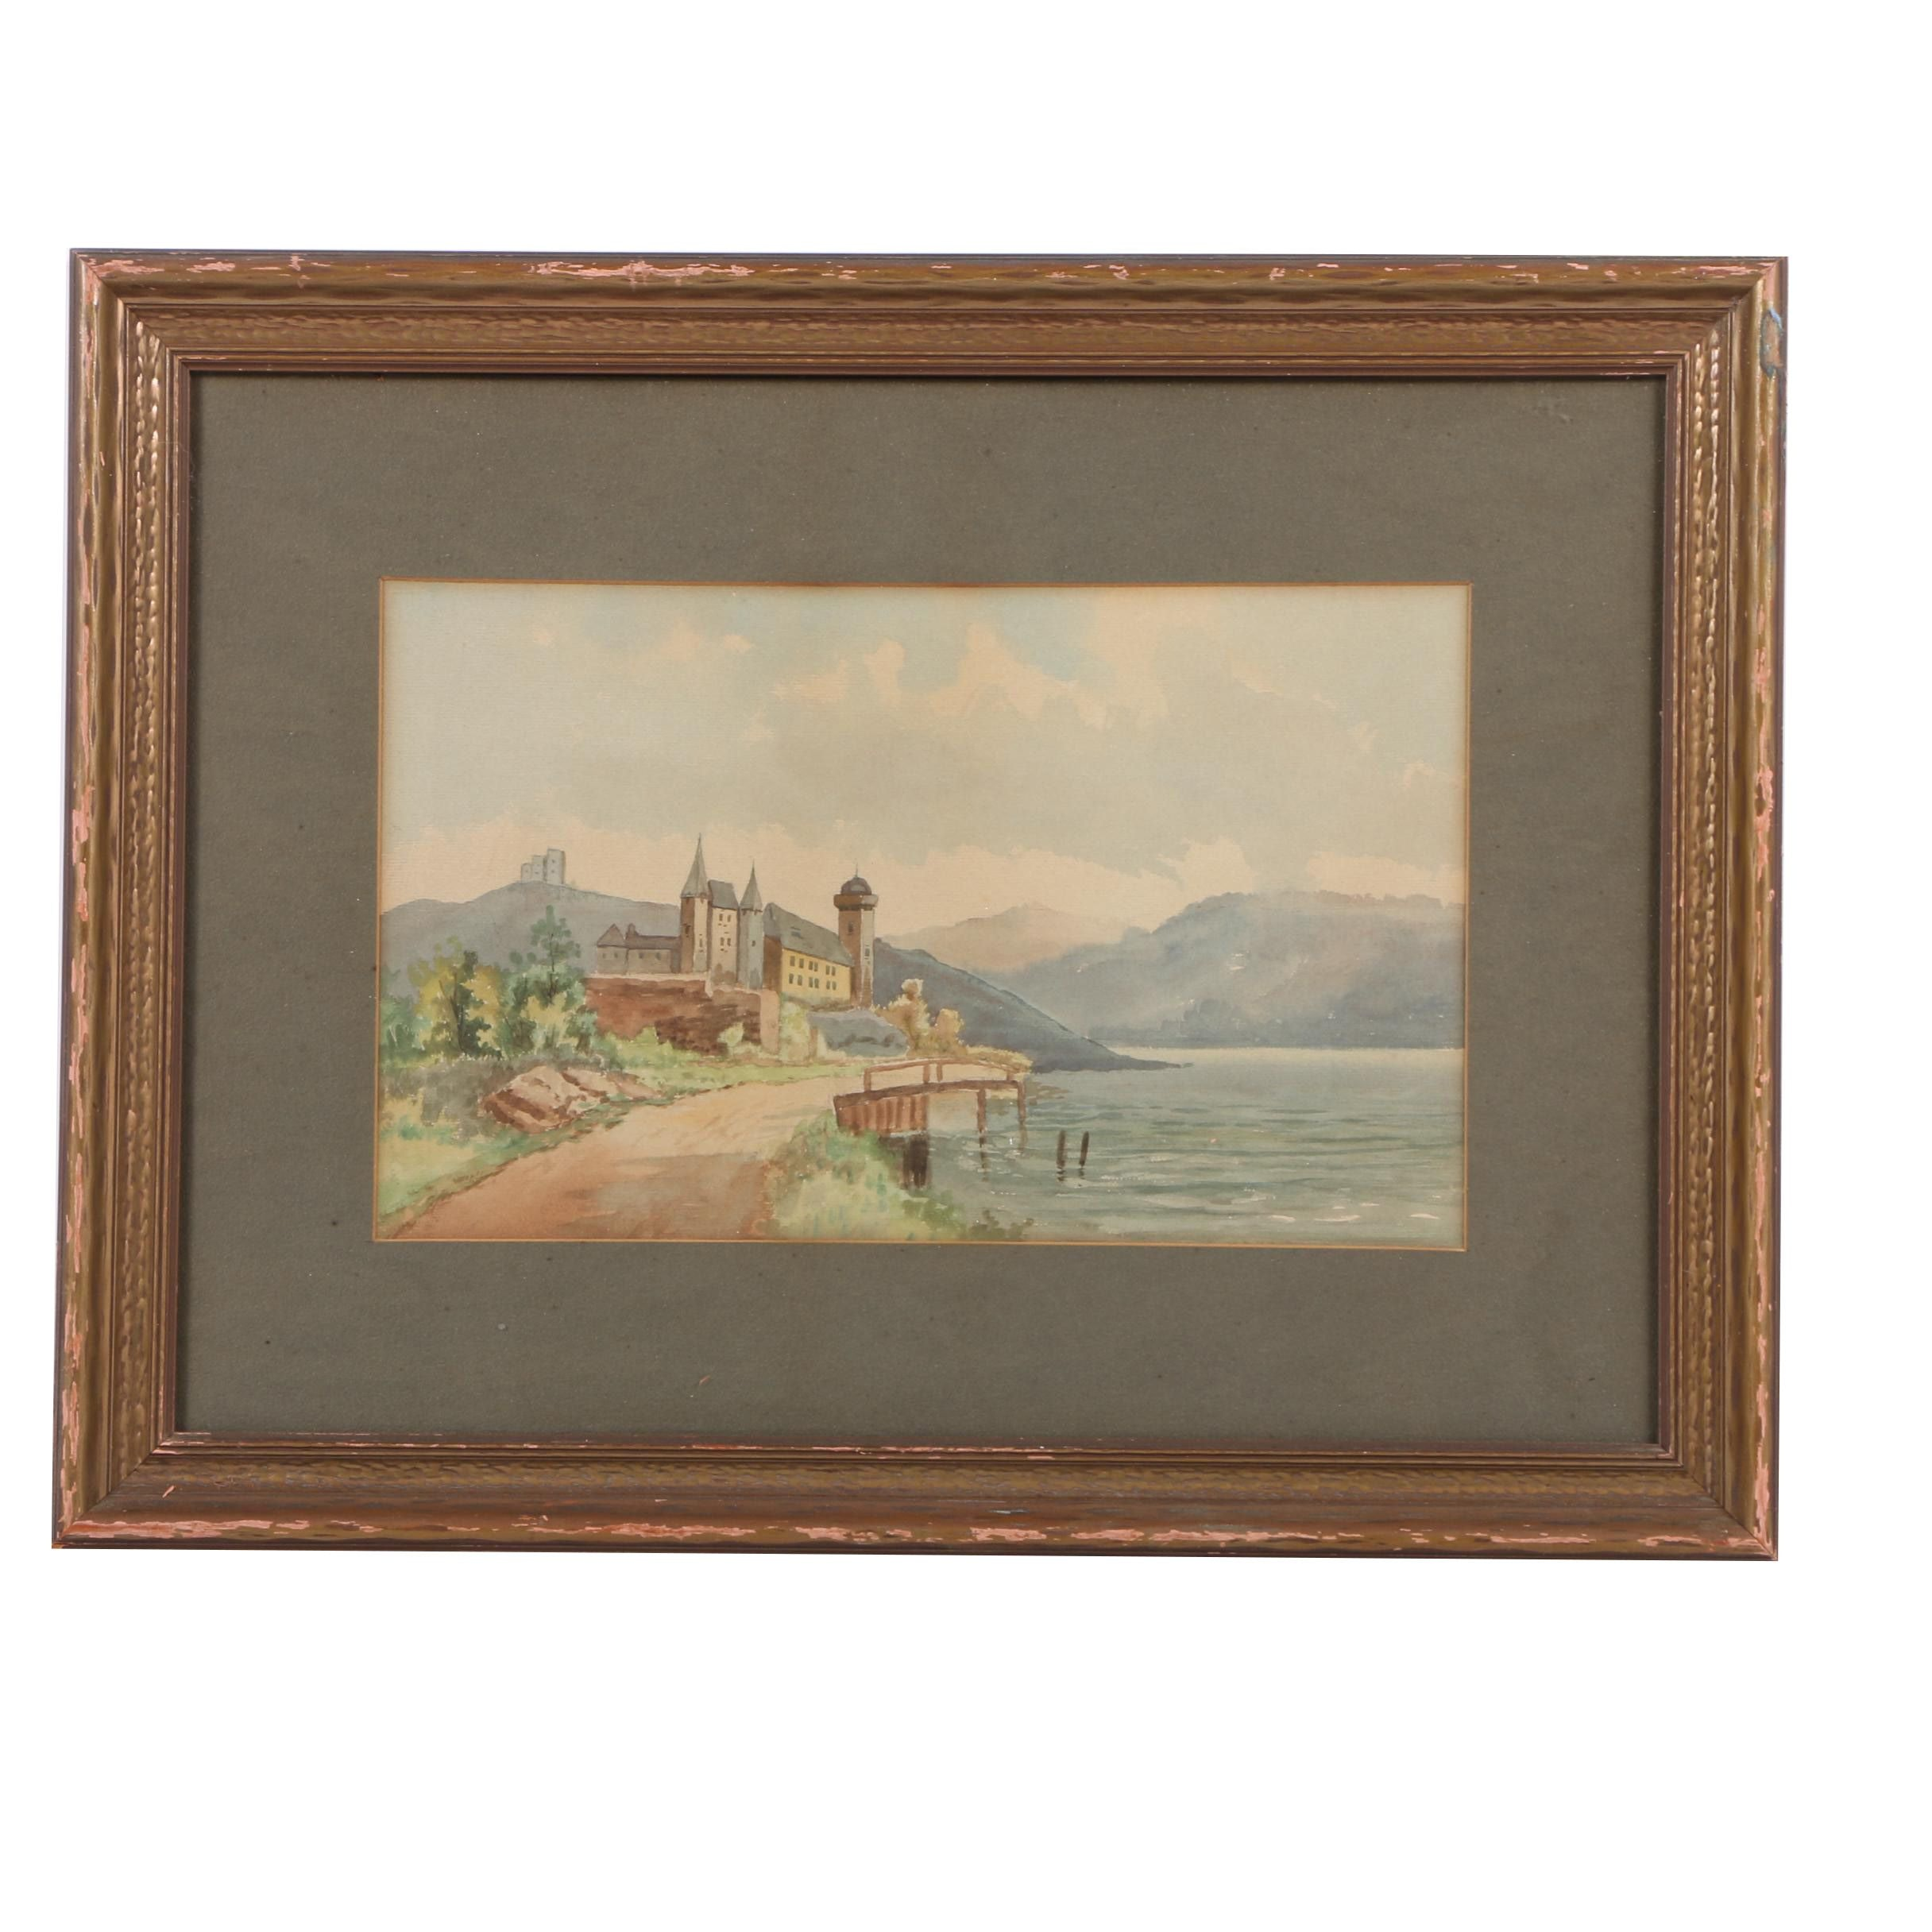 Watercolor on Paper of a Castle by a Lake